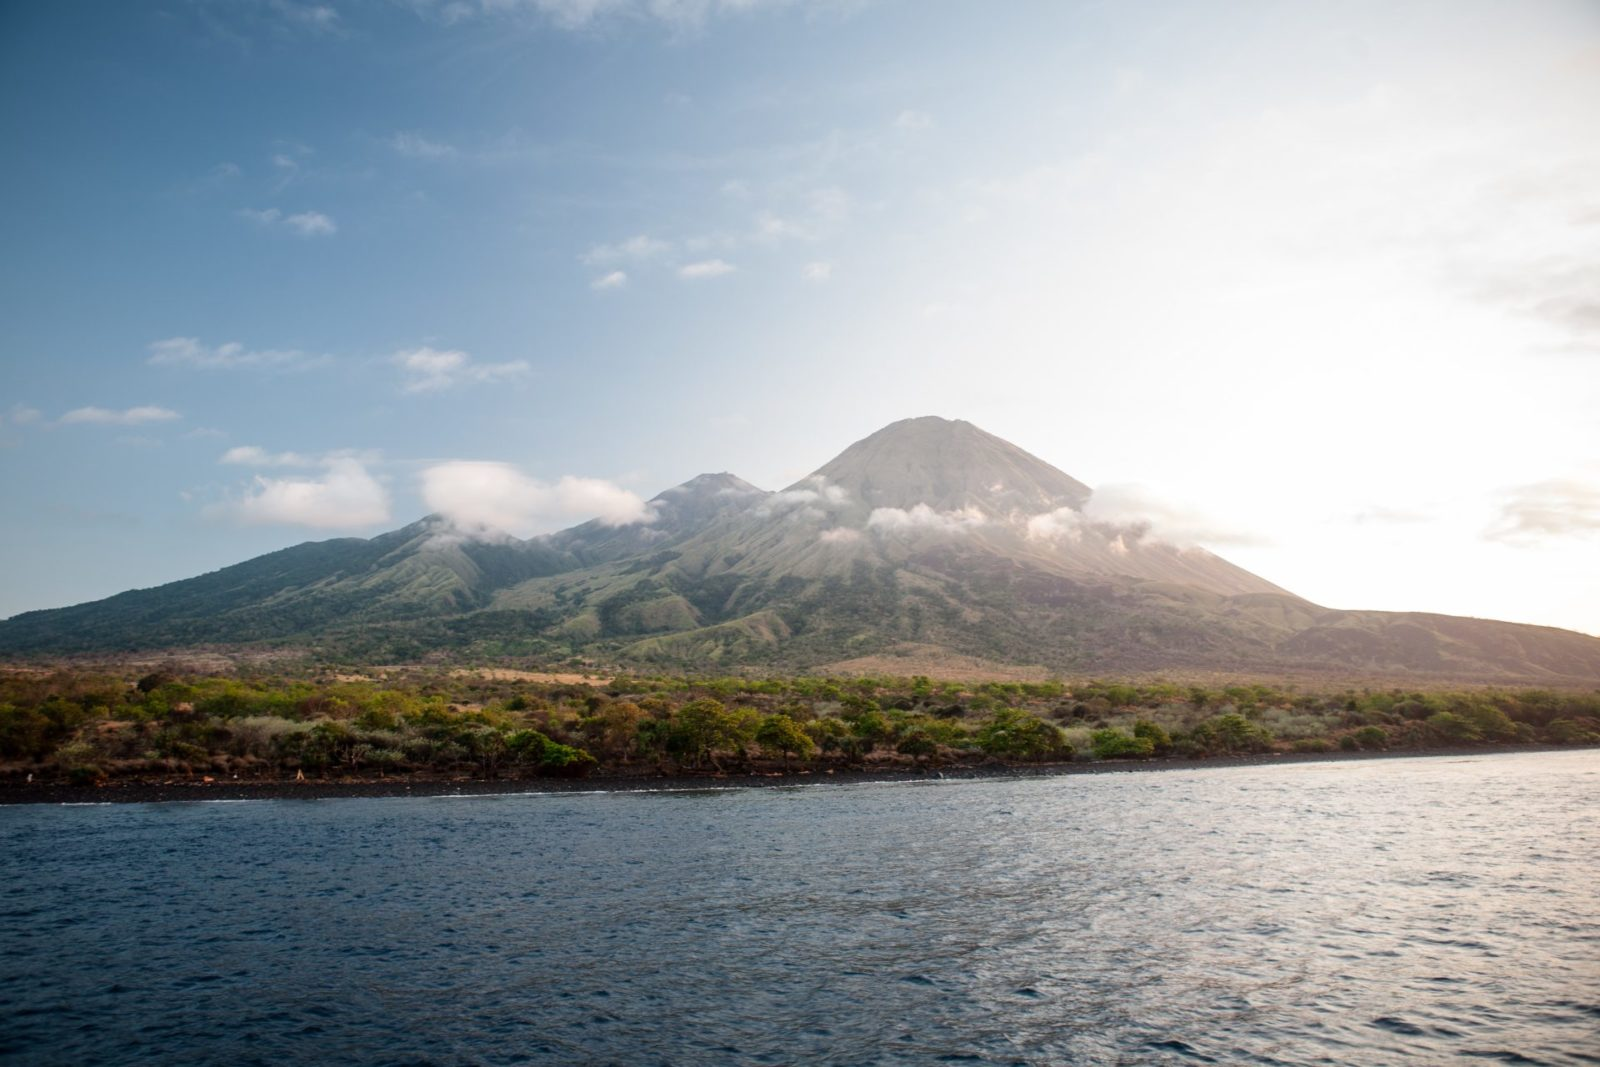 Explore mount Sangeang volcano with Hello Flores